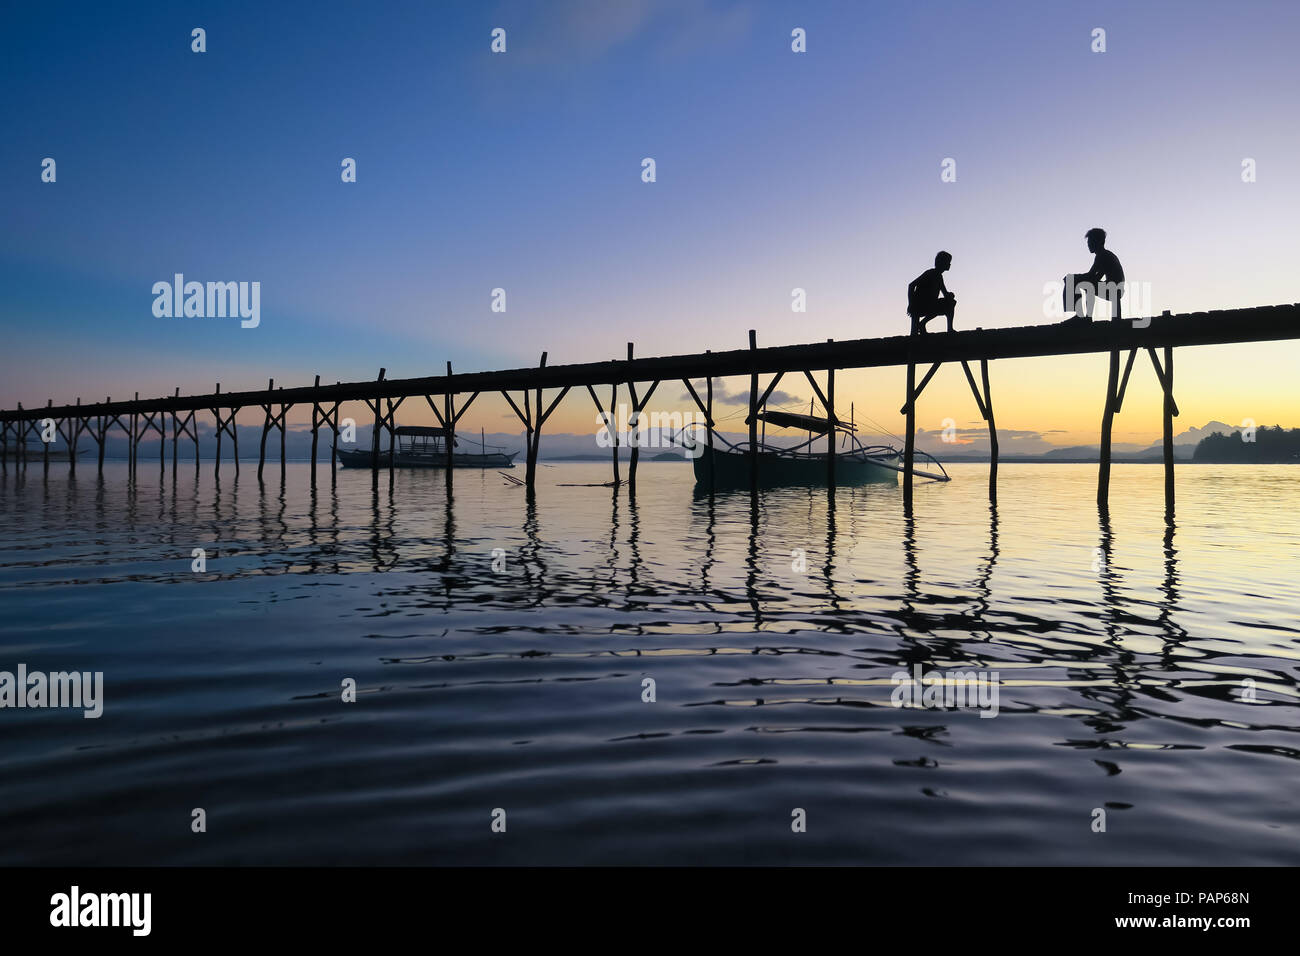 Silhouette of two teen boys sitting and visiting on an island dock, with purple sunrise - Siargao, Philippines - Stock Image